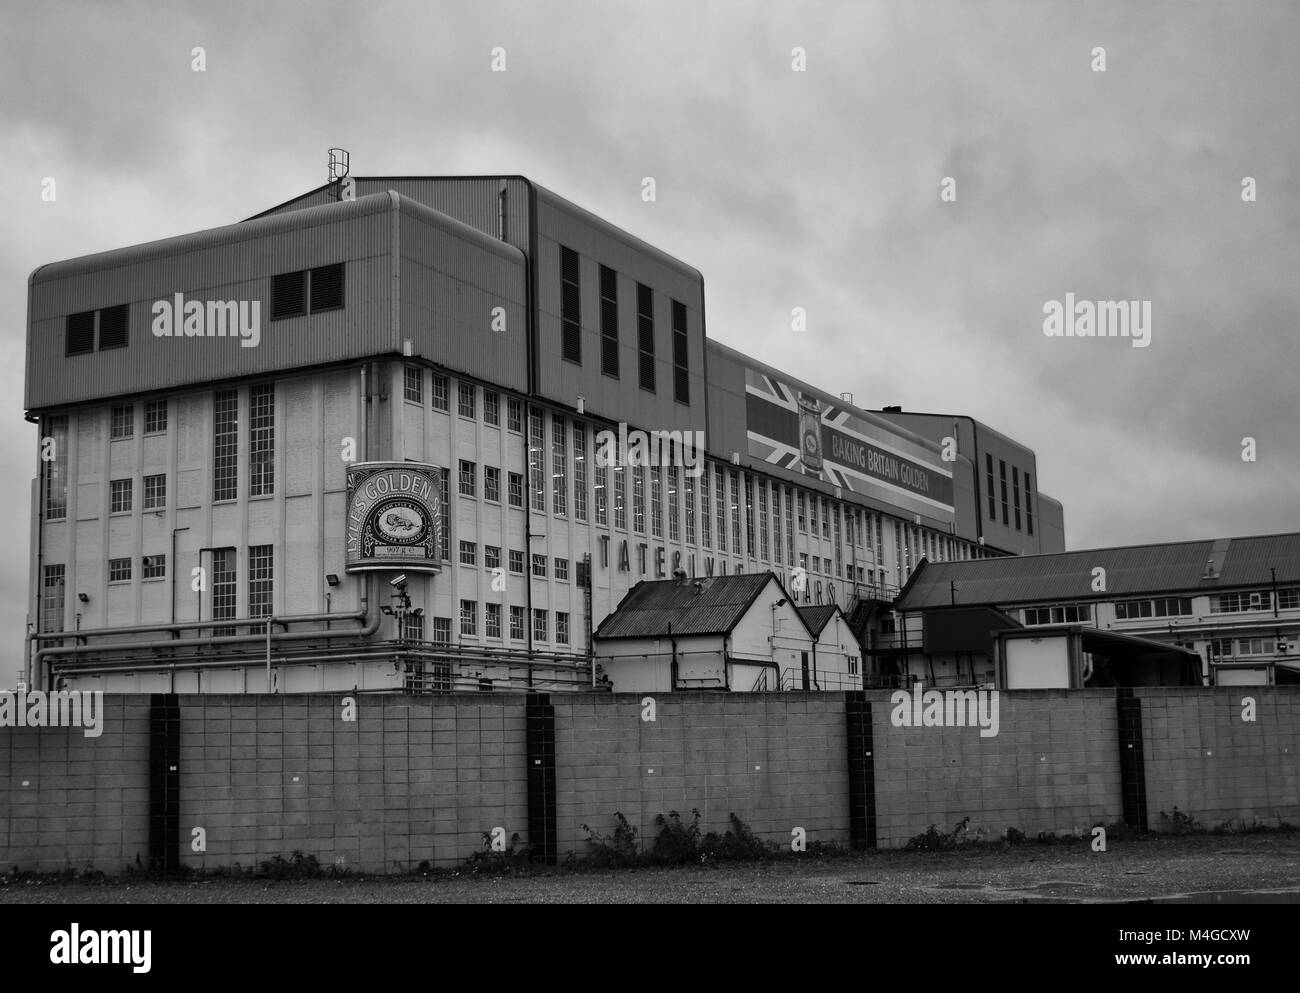 Black & White Photograph of the Tate & Lyle factory in Silvertown, London, England, UK. Credit: London Snapper - Stock Image